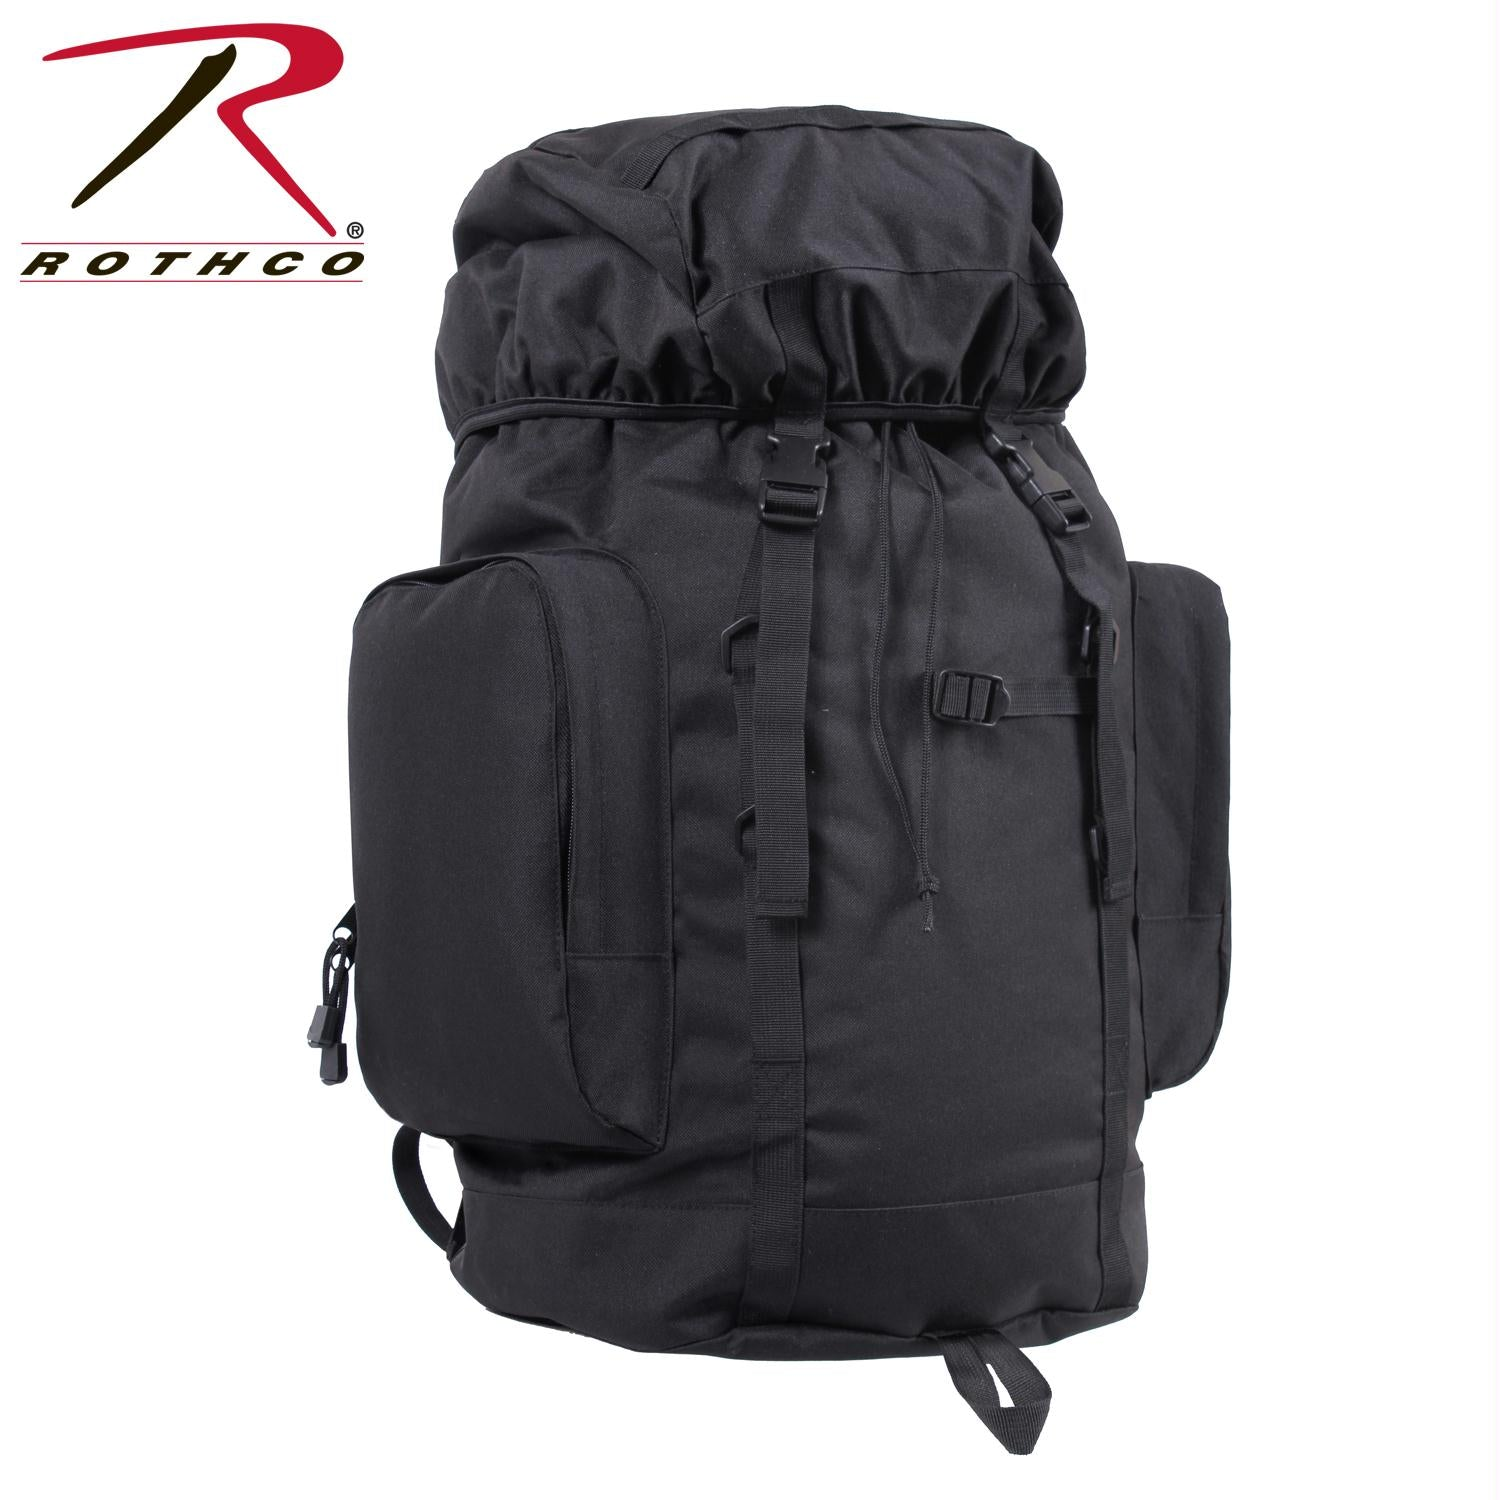 Rothco 45L Tactical Backpack - Black